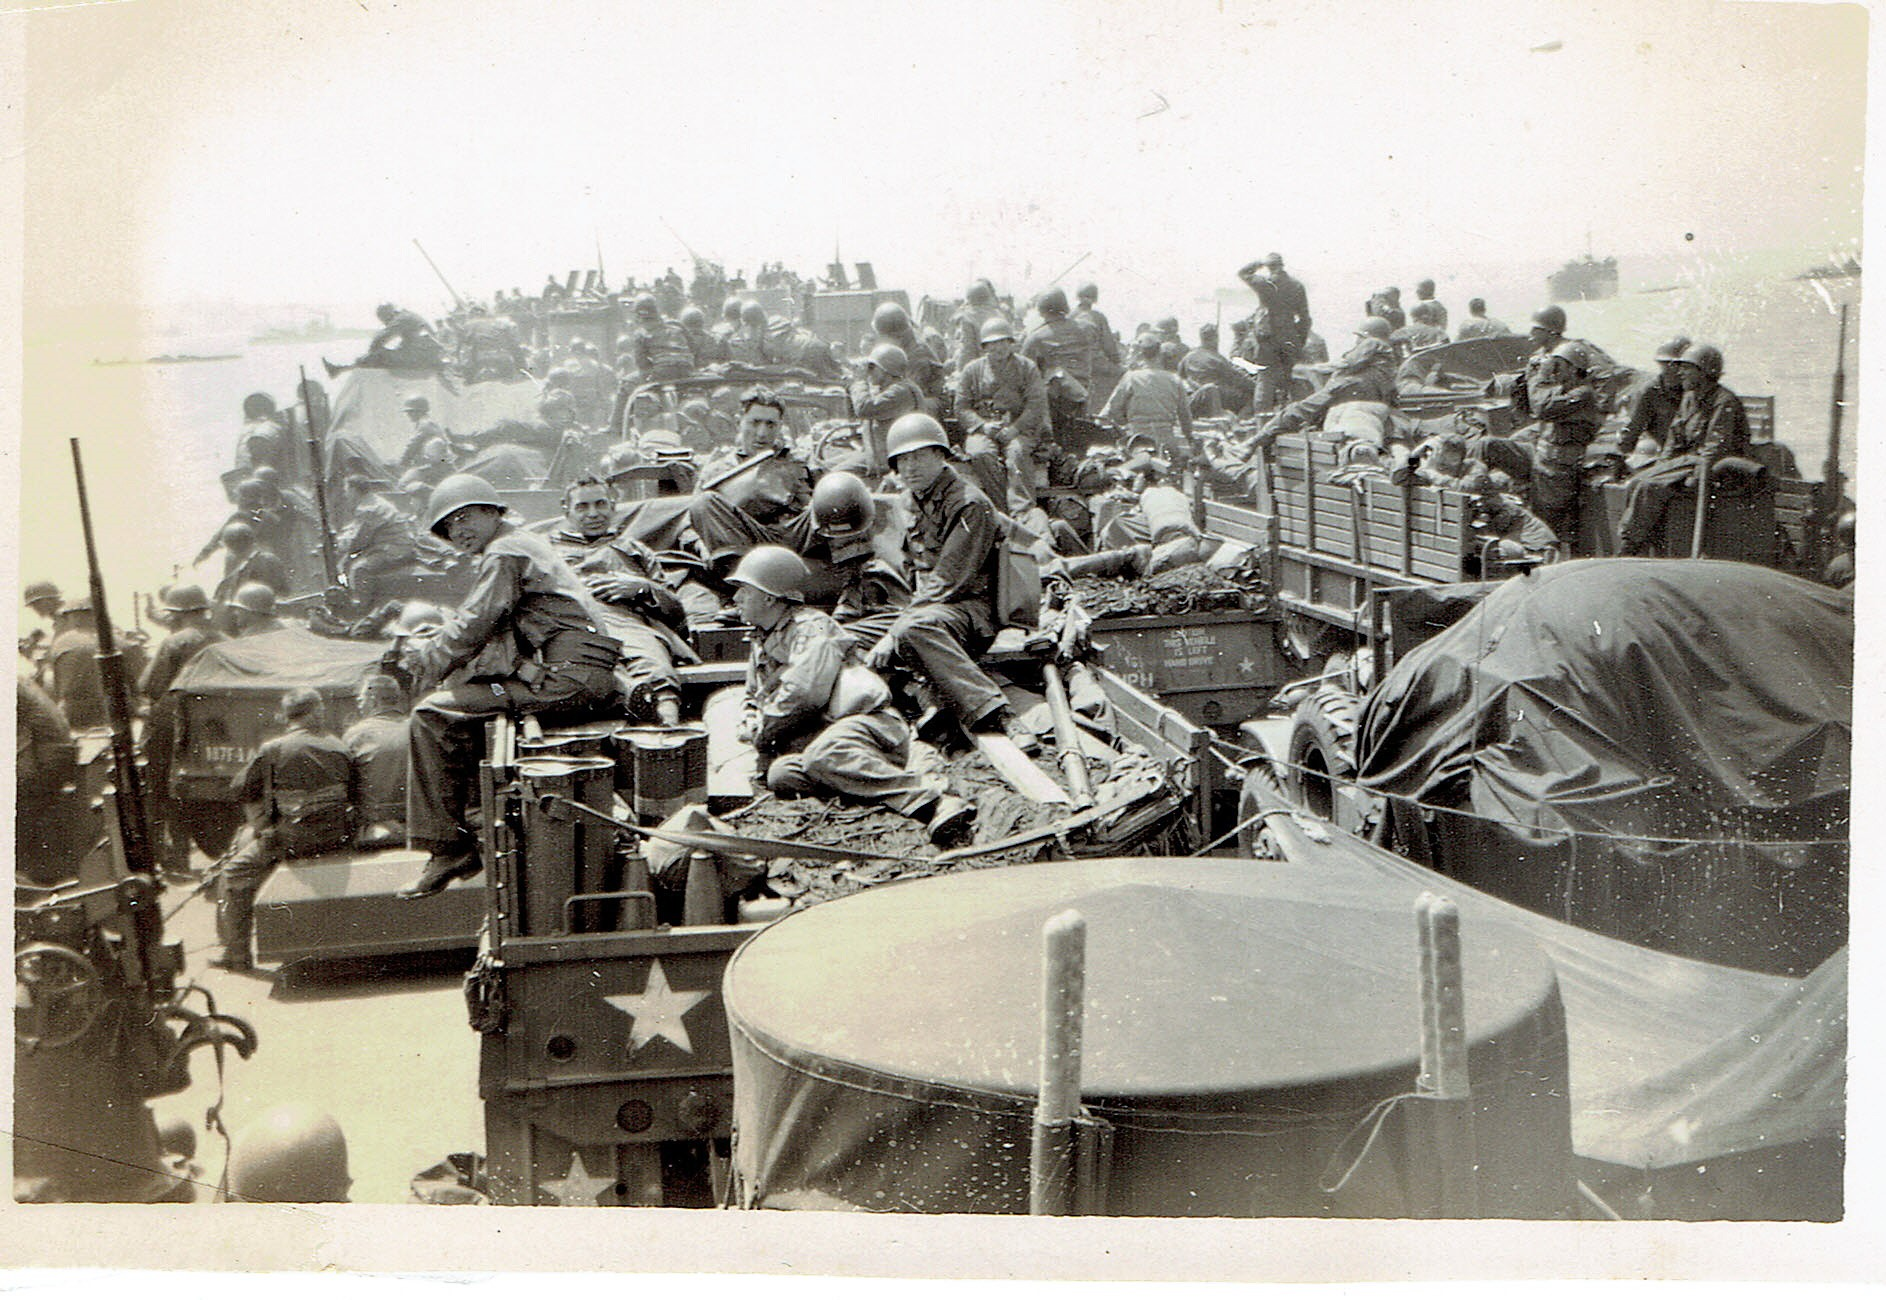 LST-388 taking troops to Normandy